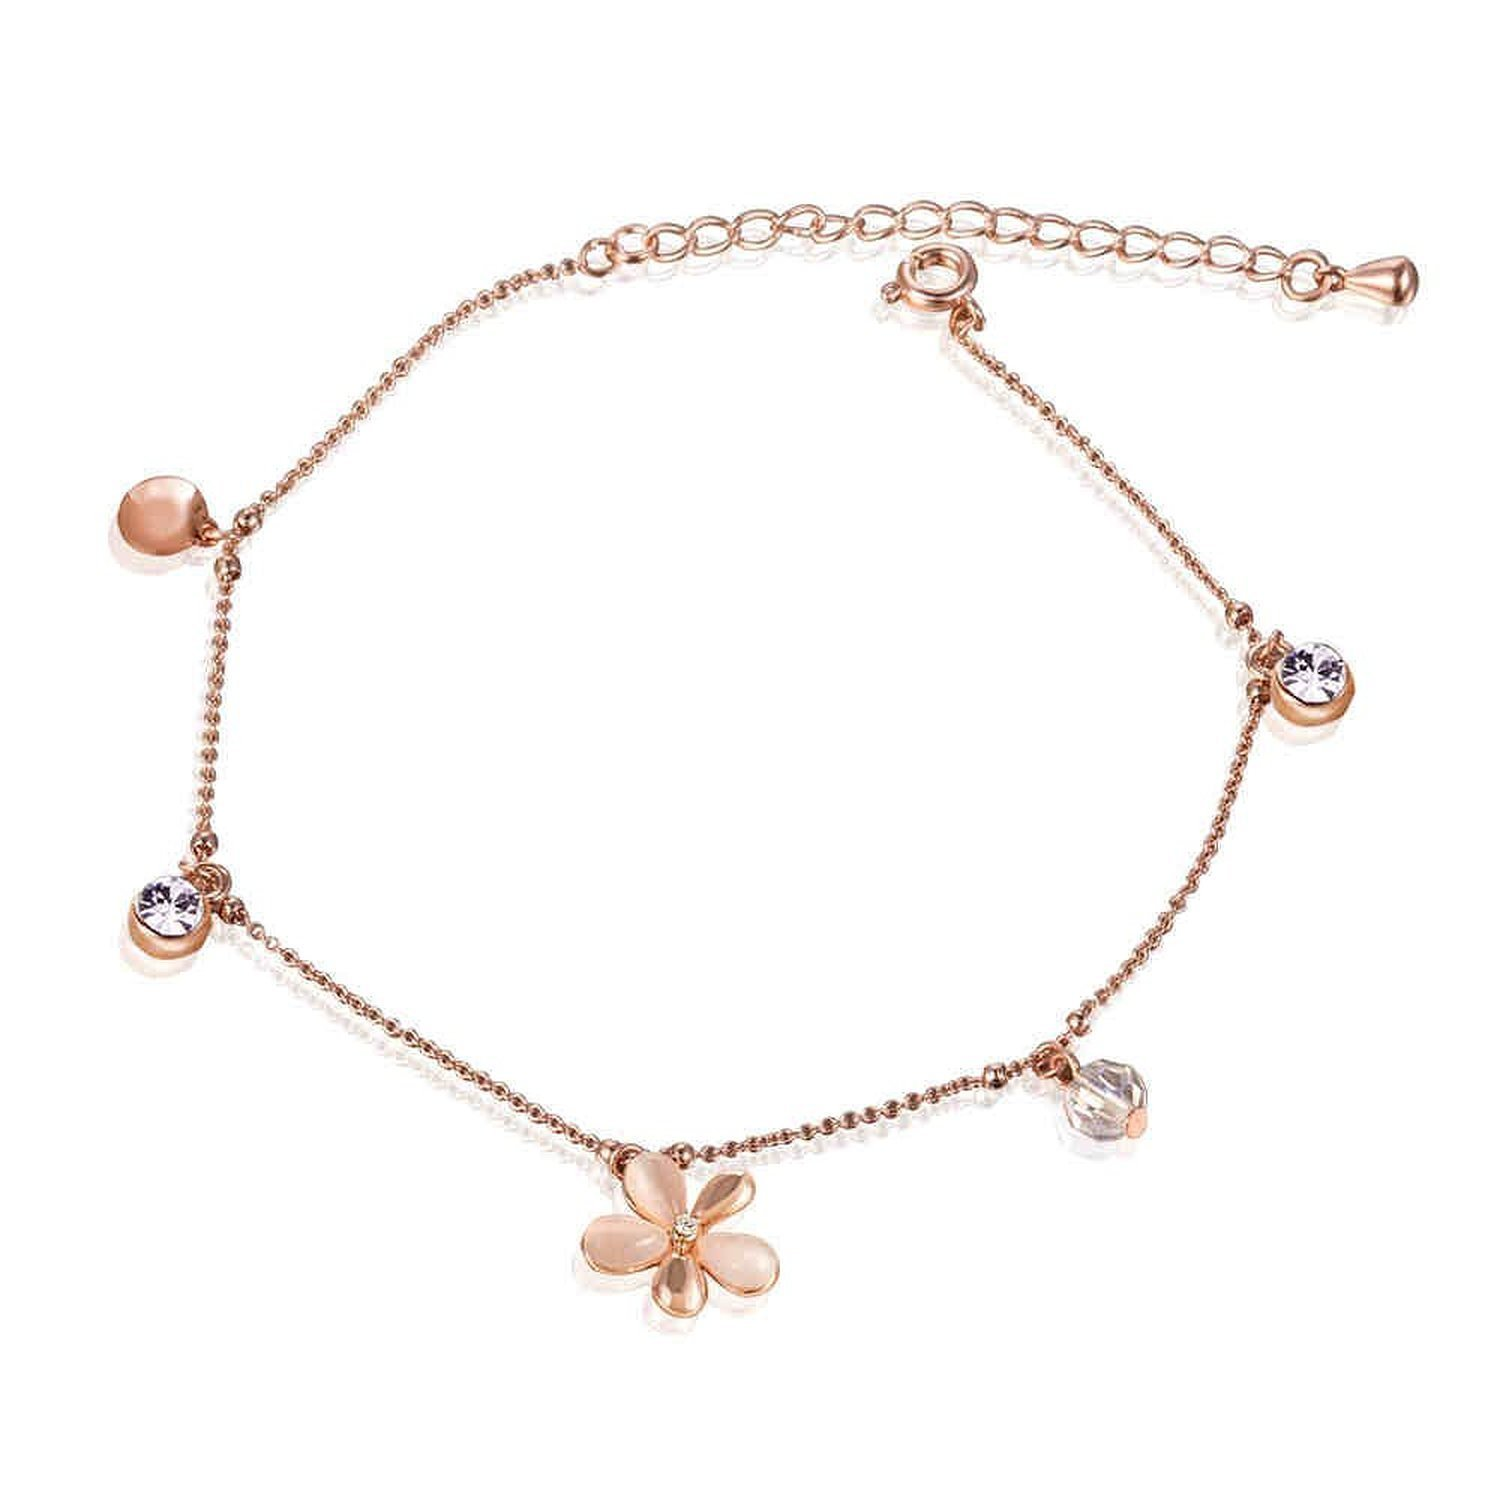 "IUHA""Cute Flowers"" Made with Cat's Eye Sparkling Anklets with Flowers For Women or Girls Present Gifts Prevent allergies"